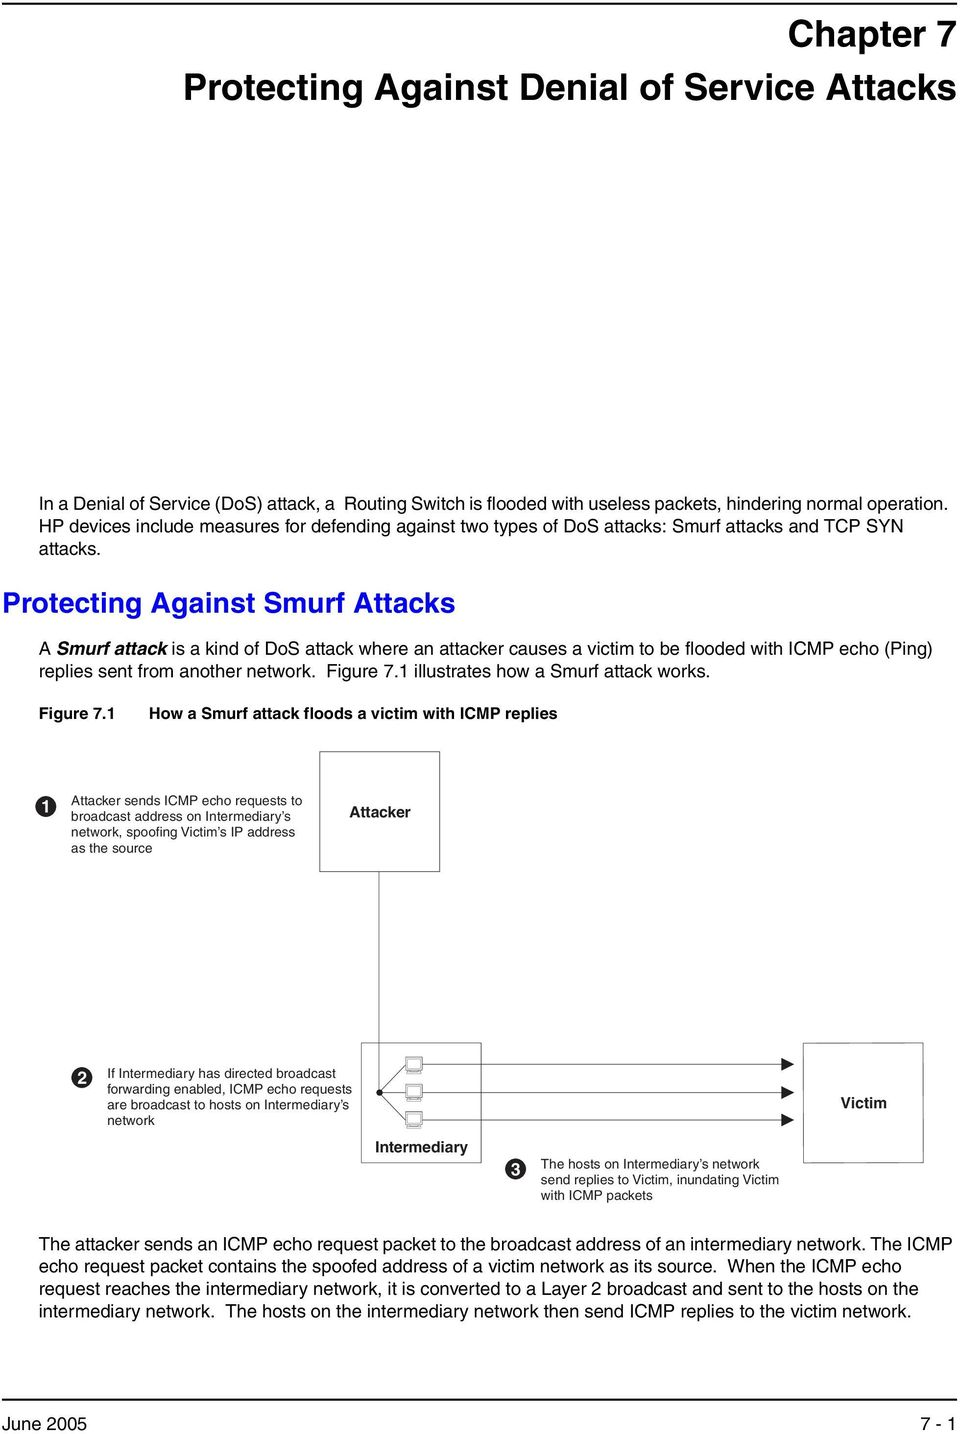 Protecting Against Smurf Attacks A Smurf attack is a kind of DoS attack where an attacker causes a victim to be flooded with ICMP echo (Ping) replies sent from another network. Figure 7.